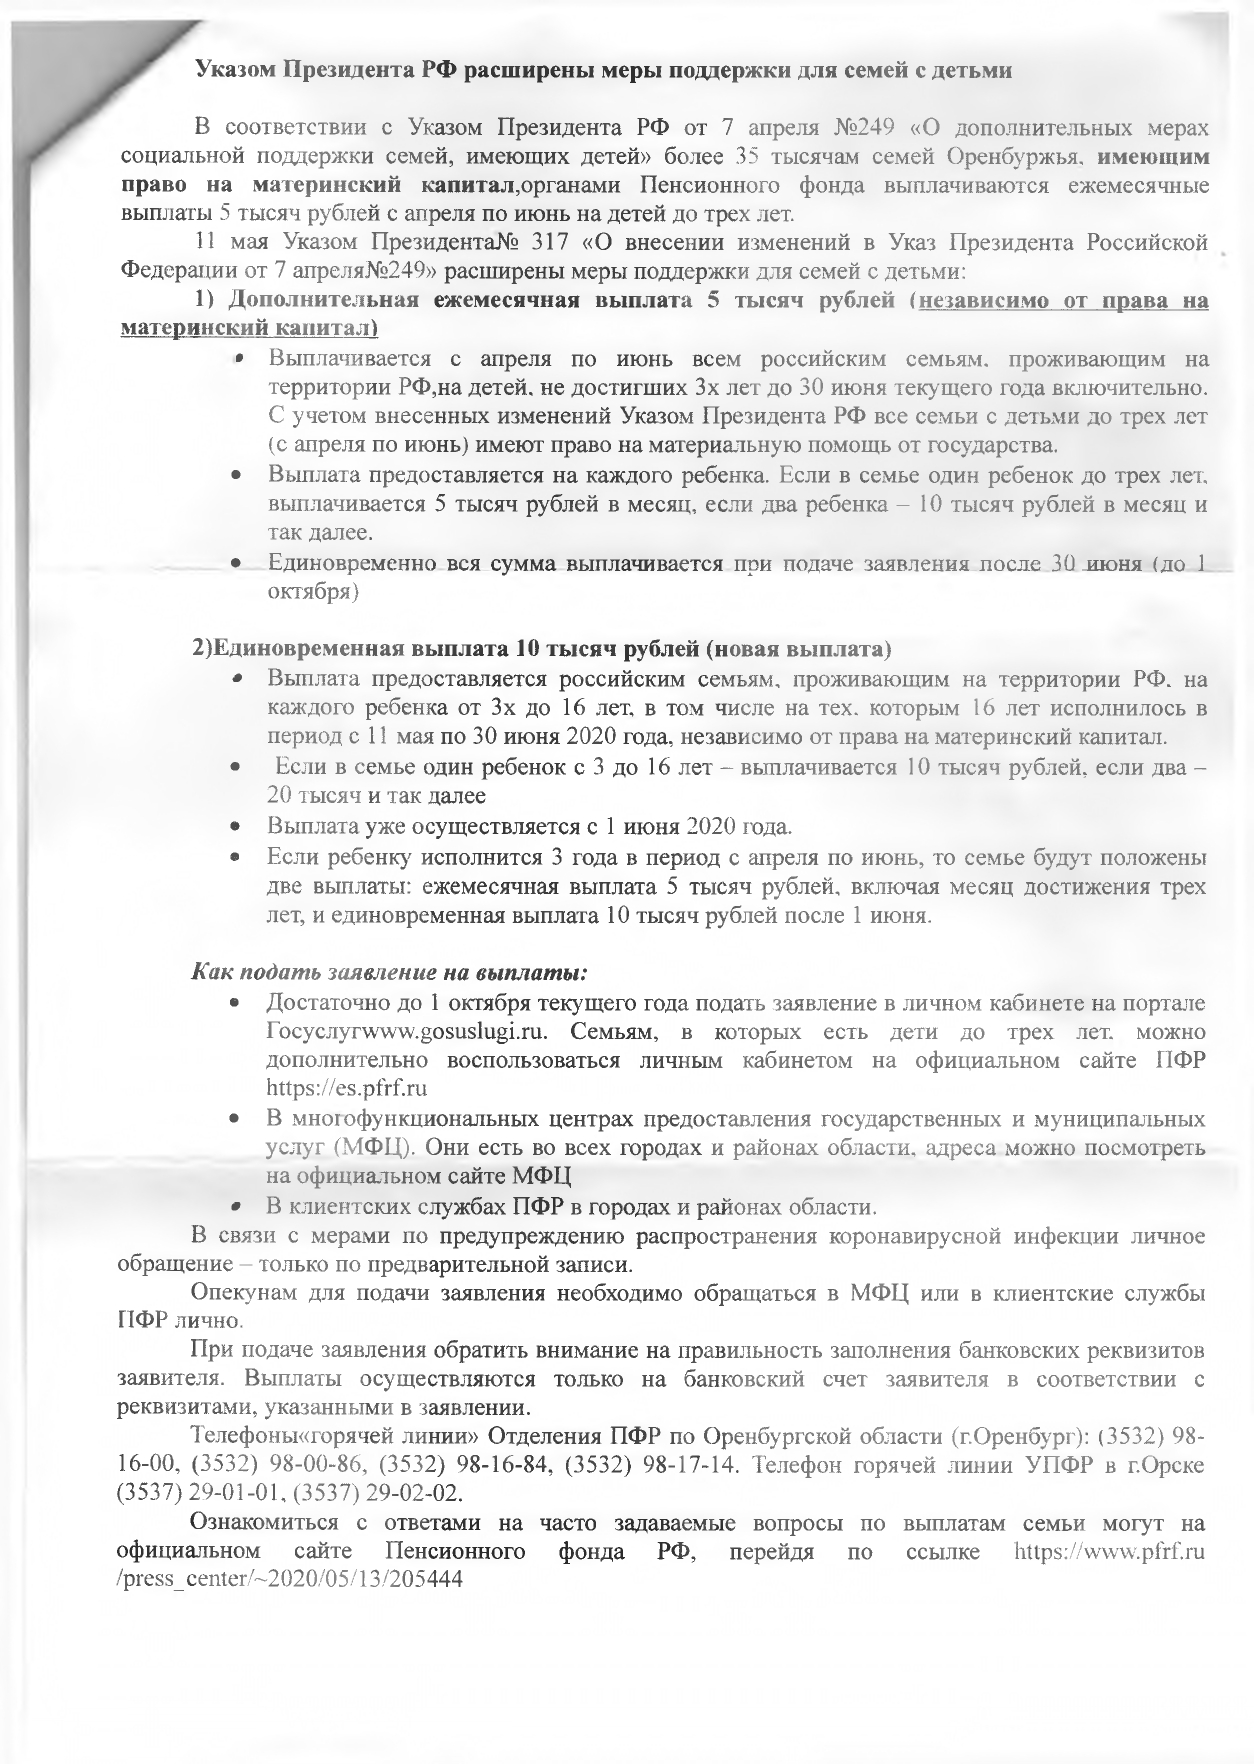 ПФРФ page 0001